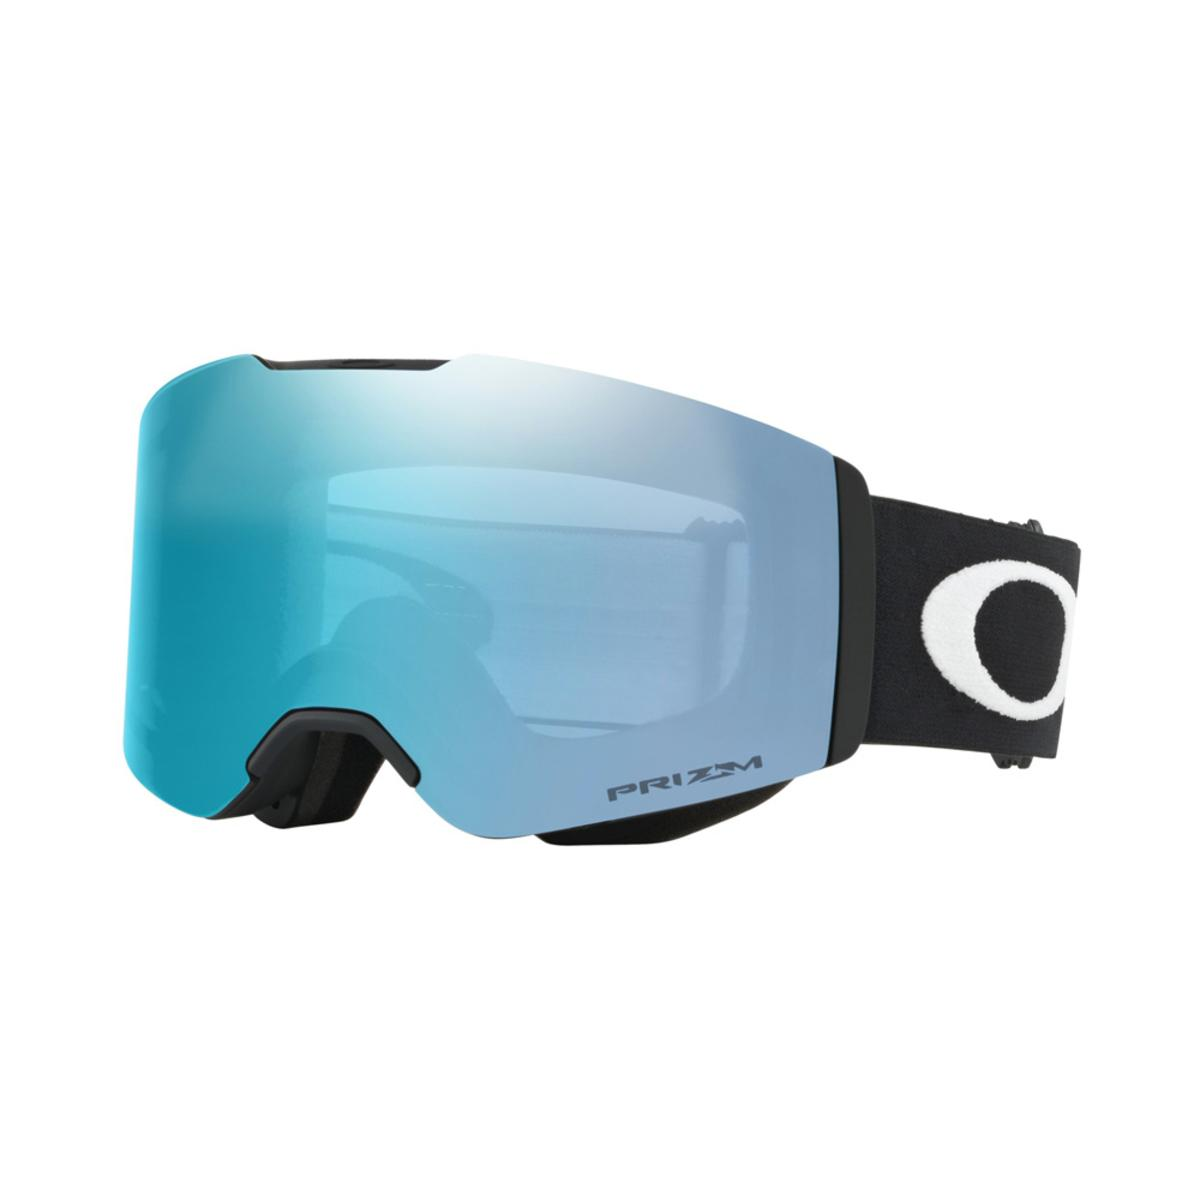 6560bb5d87 Oakley Fall Line Matte Black Snow Goggle w Prizm Snow Sapphire Iridium -  The Warming Store